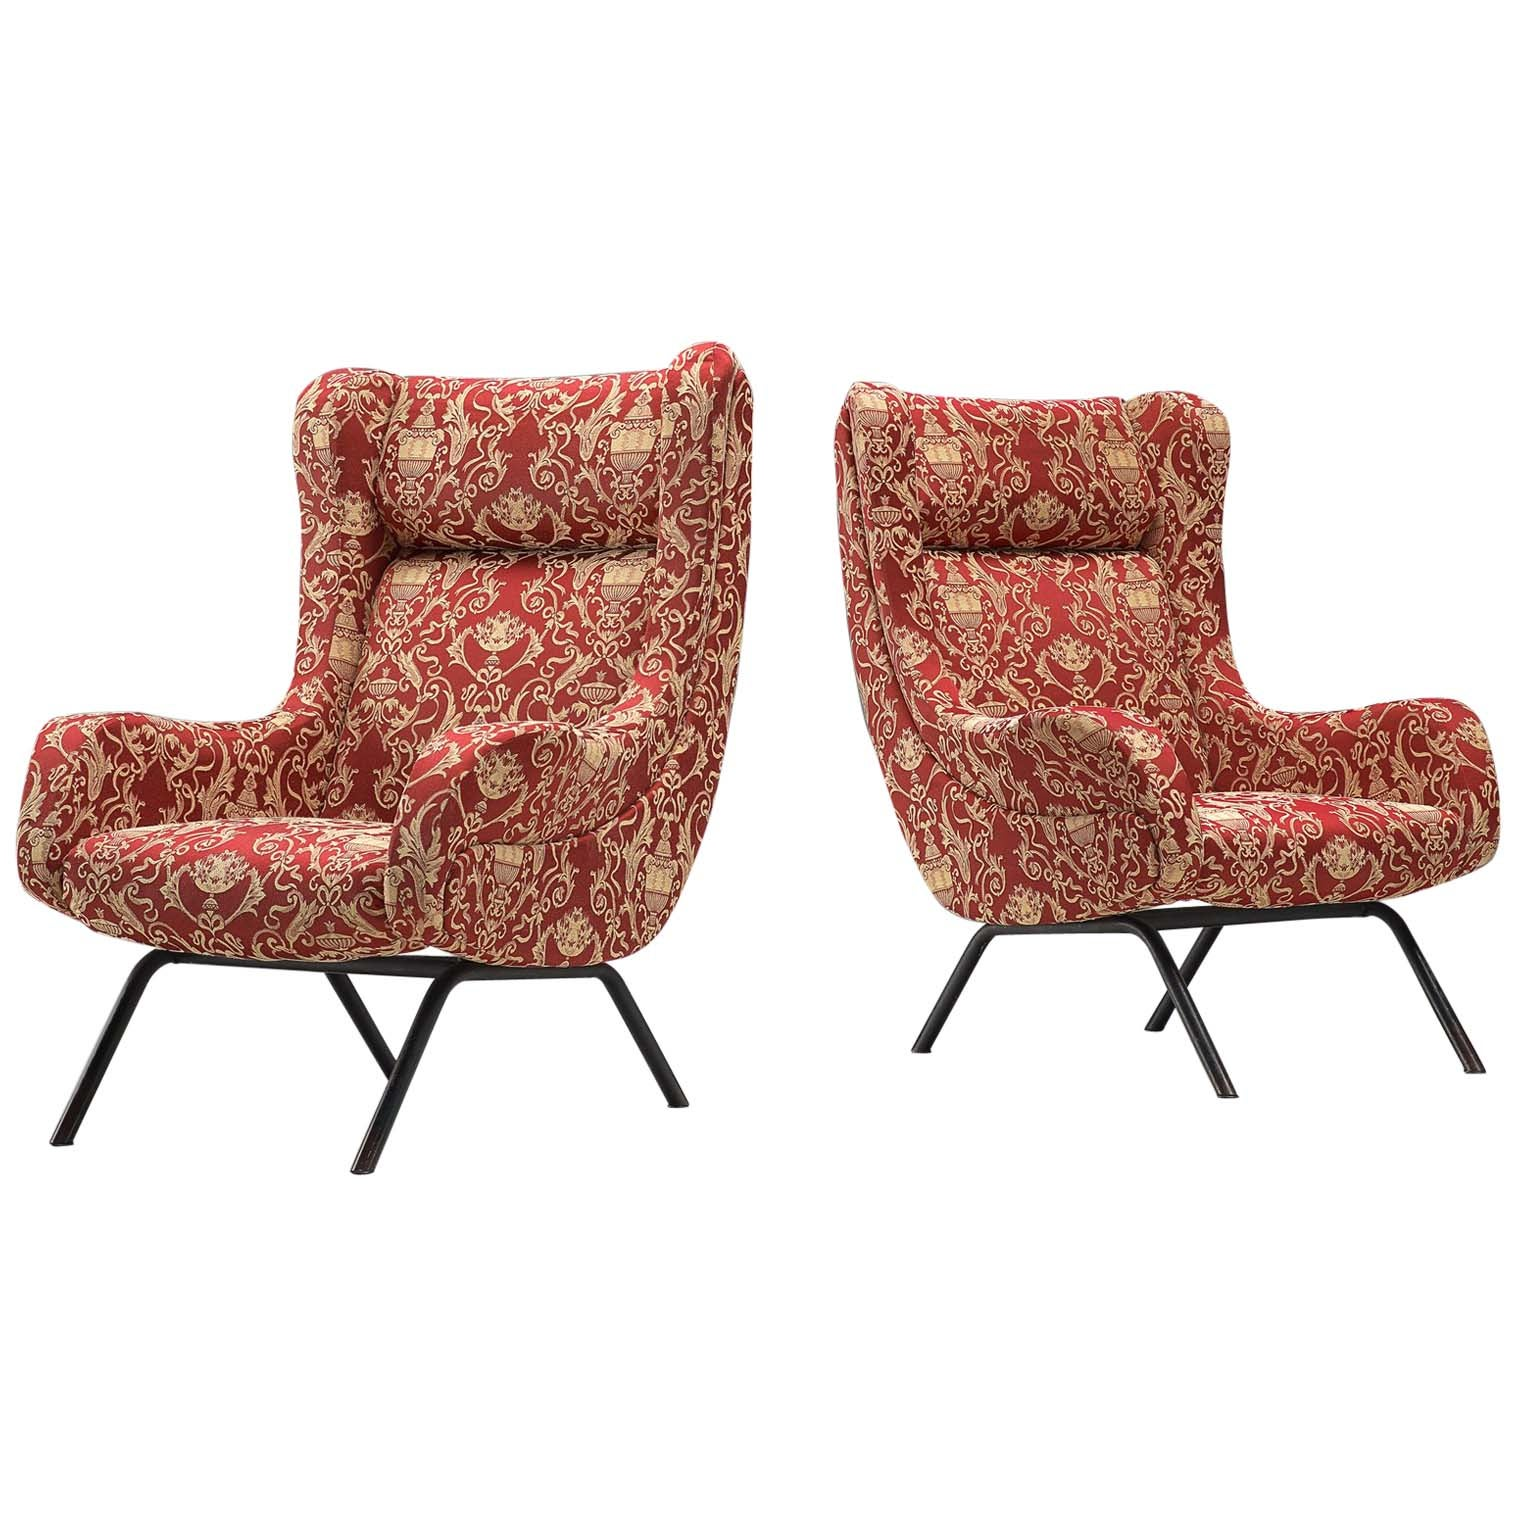 Two Italian Lounge Chairs in Baroque Patterned Fabric